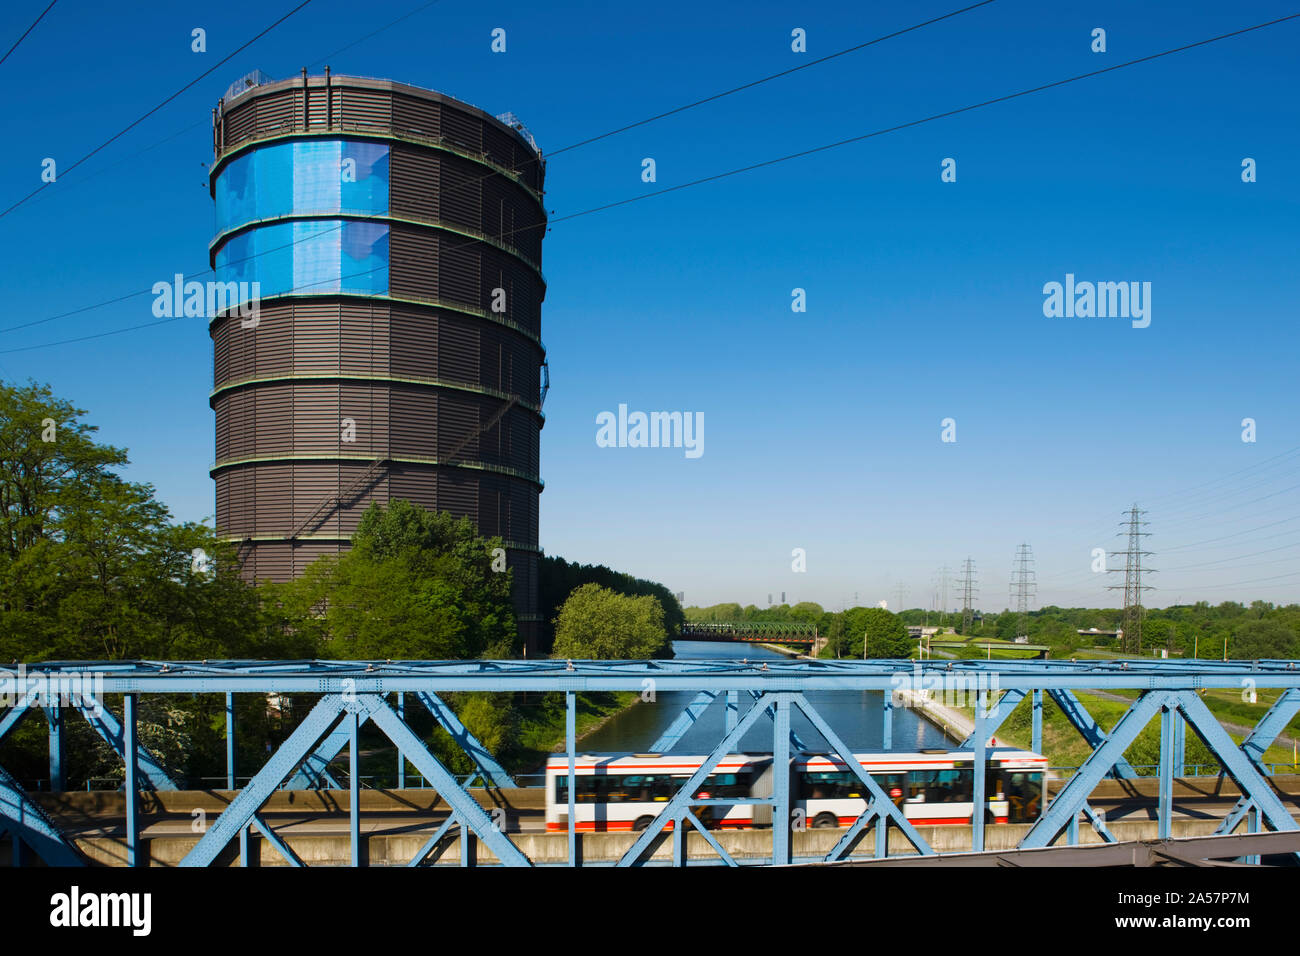 Gasometer at a shopping center, Oberhausen, Ruhr, North Rhine Westphalia, Germany Stock Photo